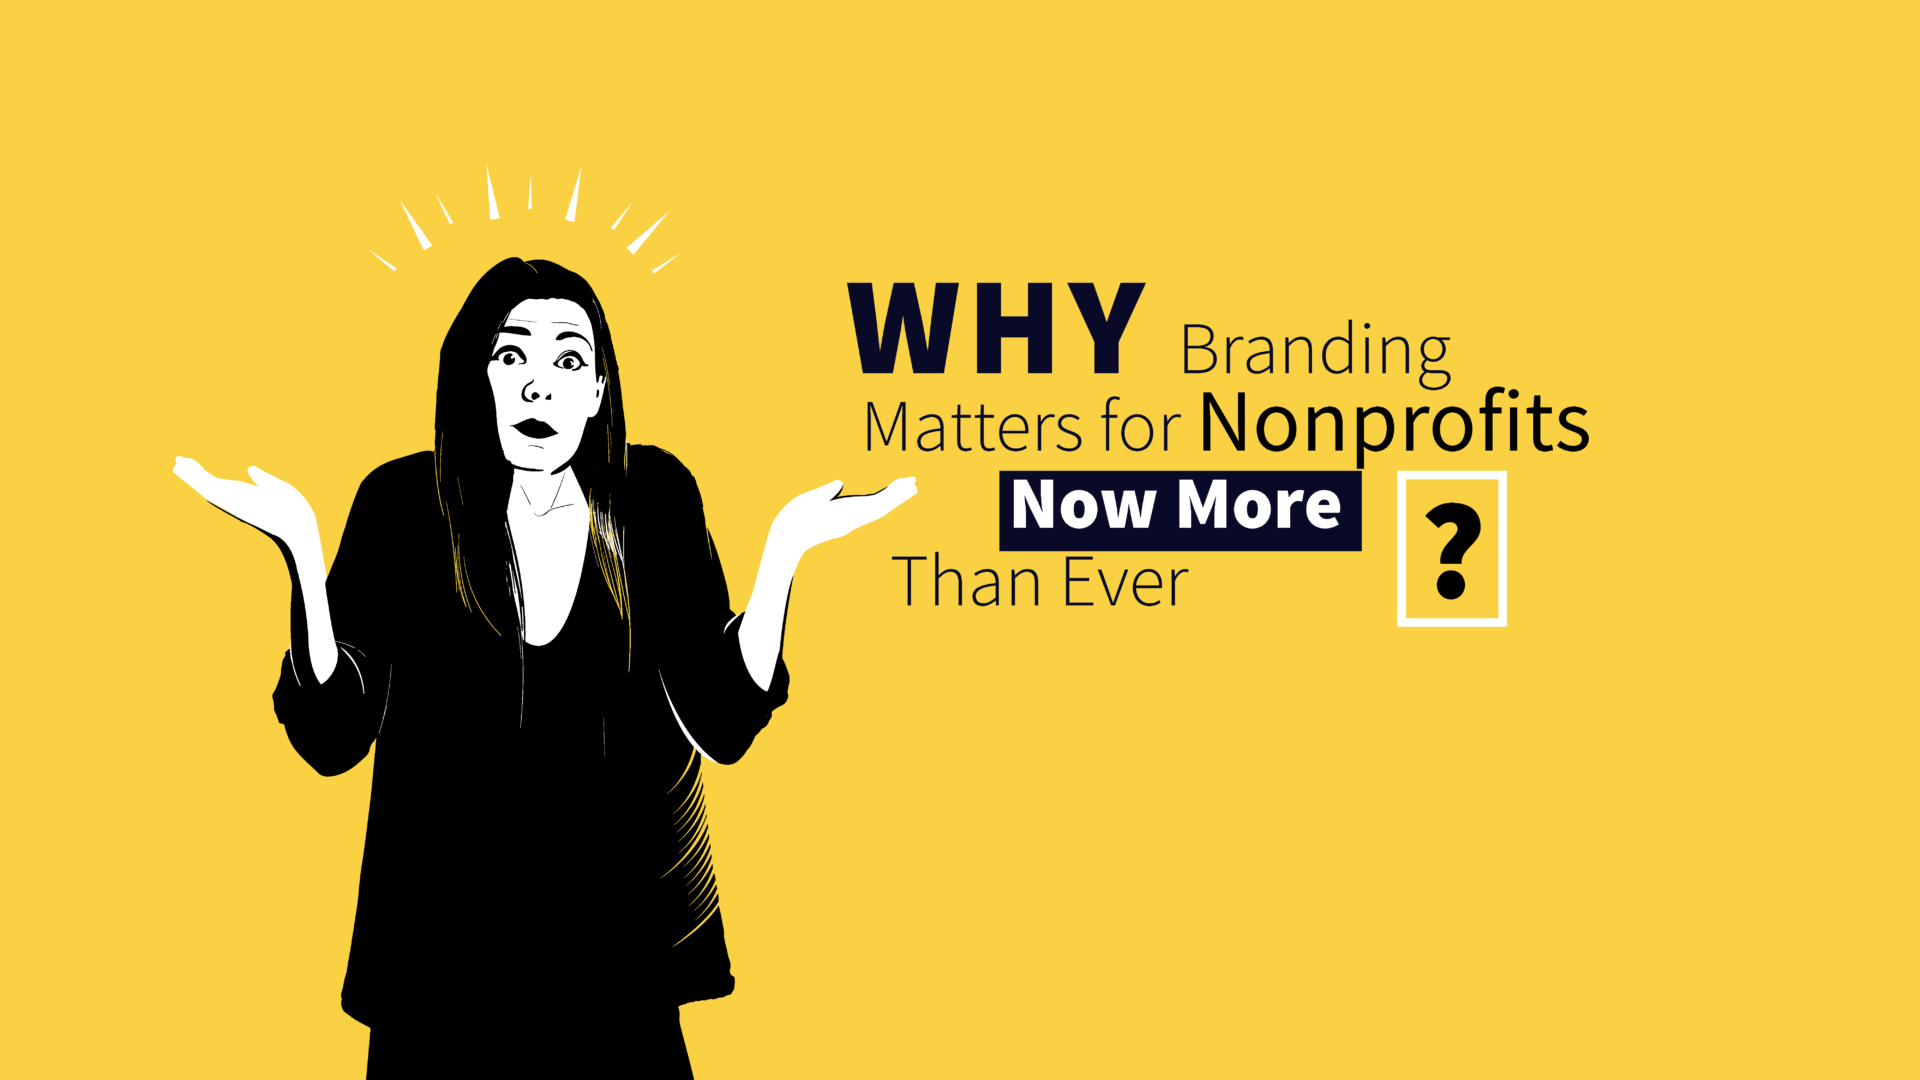 Why Branding for Nonprofits Matters Now More Than Ever